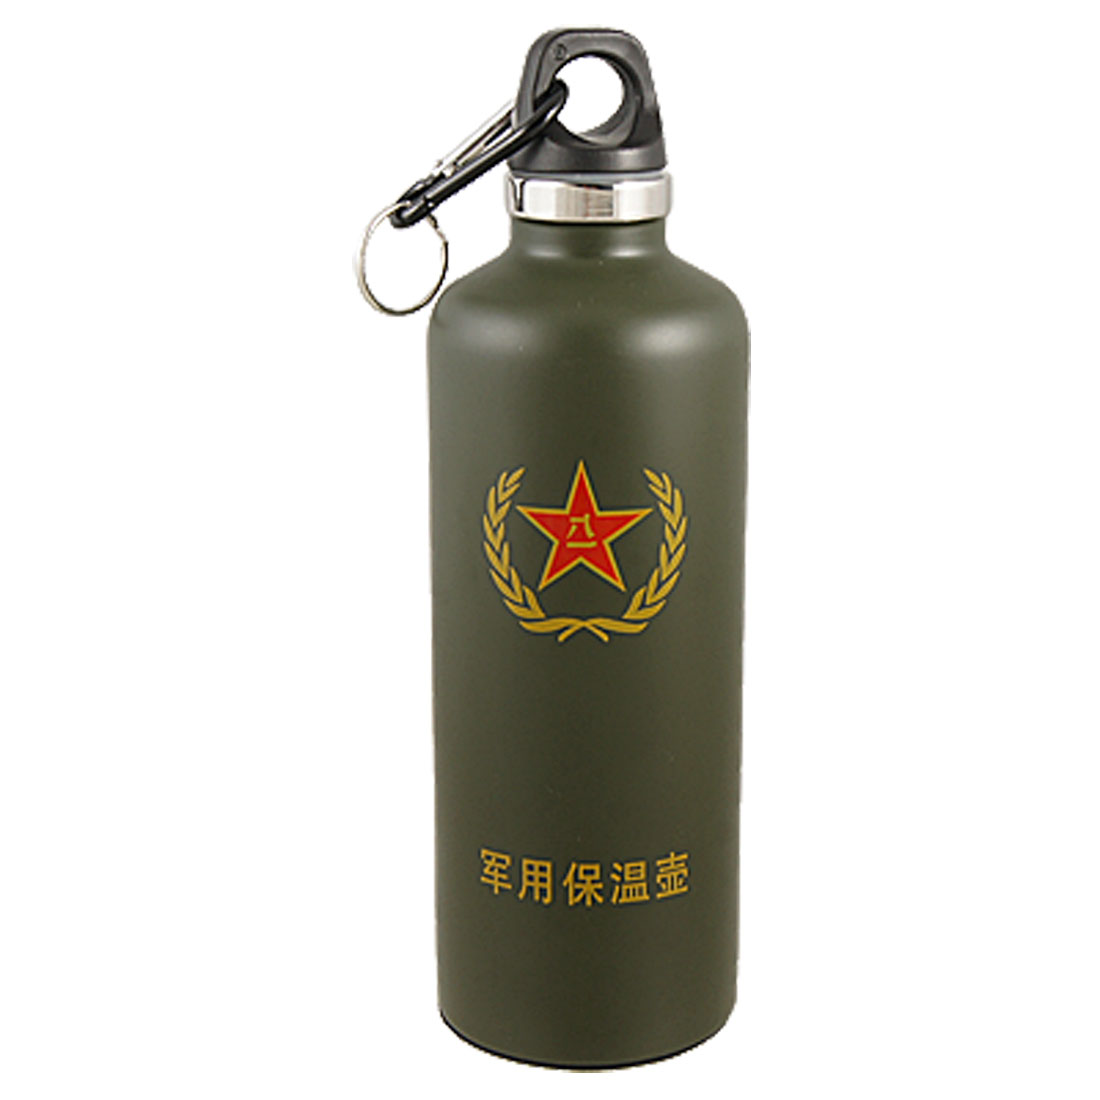 Army Green Stainless Steel Vacuum Insulated Flask Bottle 500ml 17 Oz w keyring